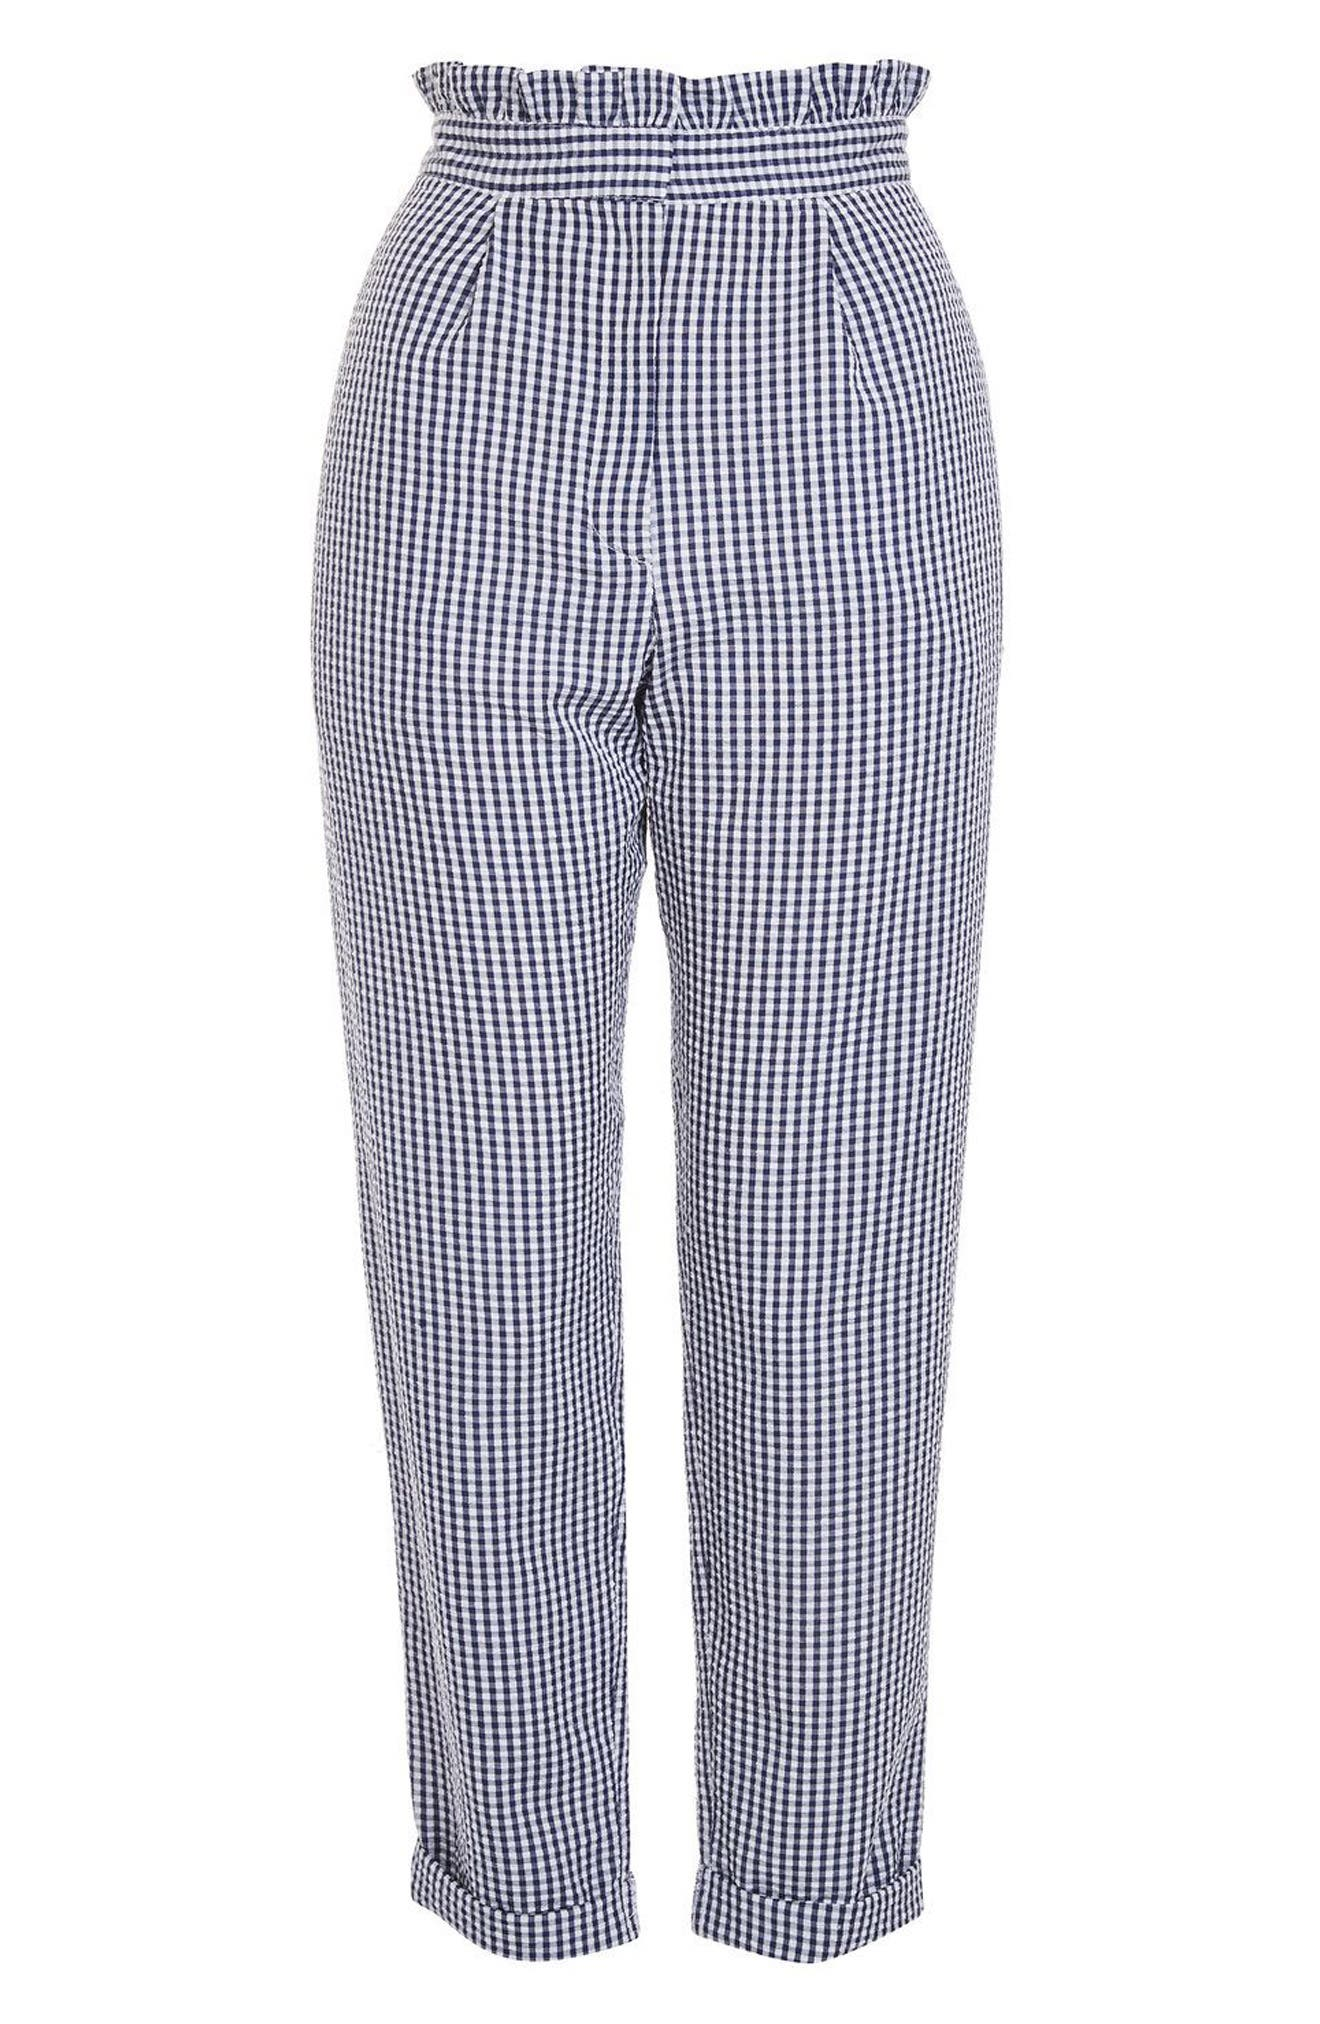 Alternate Image 3  - Topshop Ruffle Waist Gingham Trousers